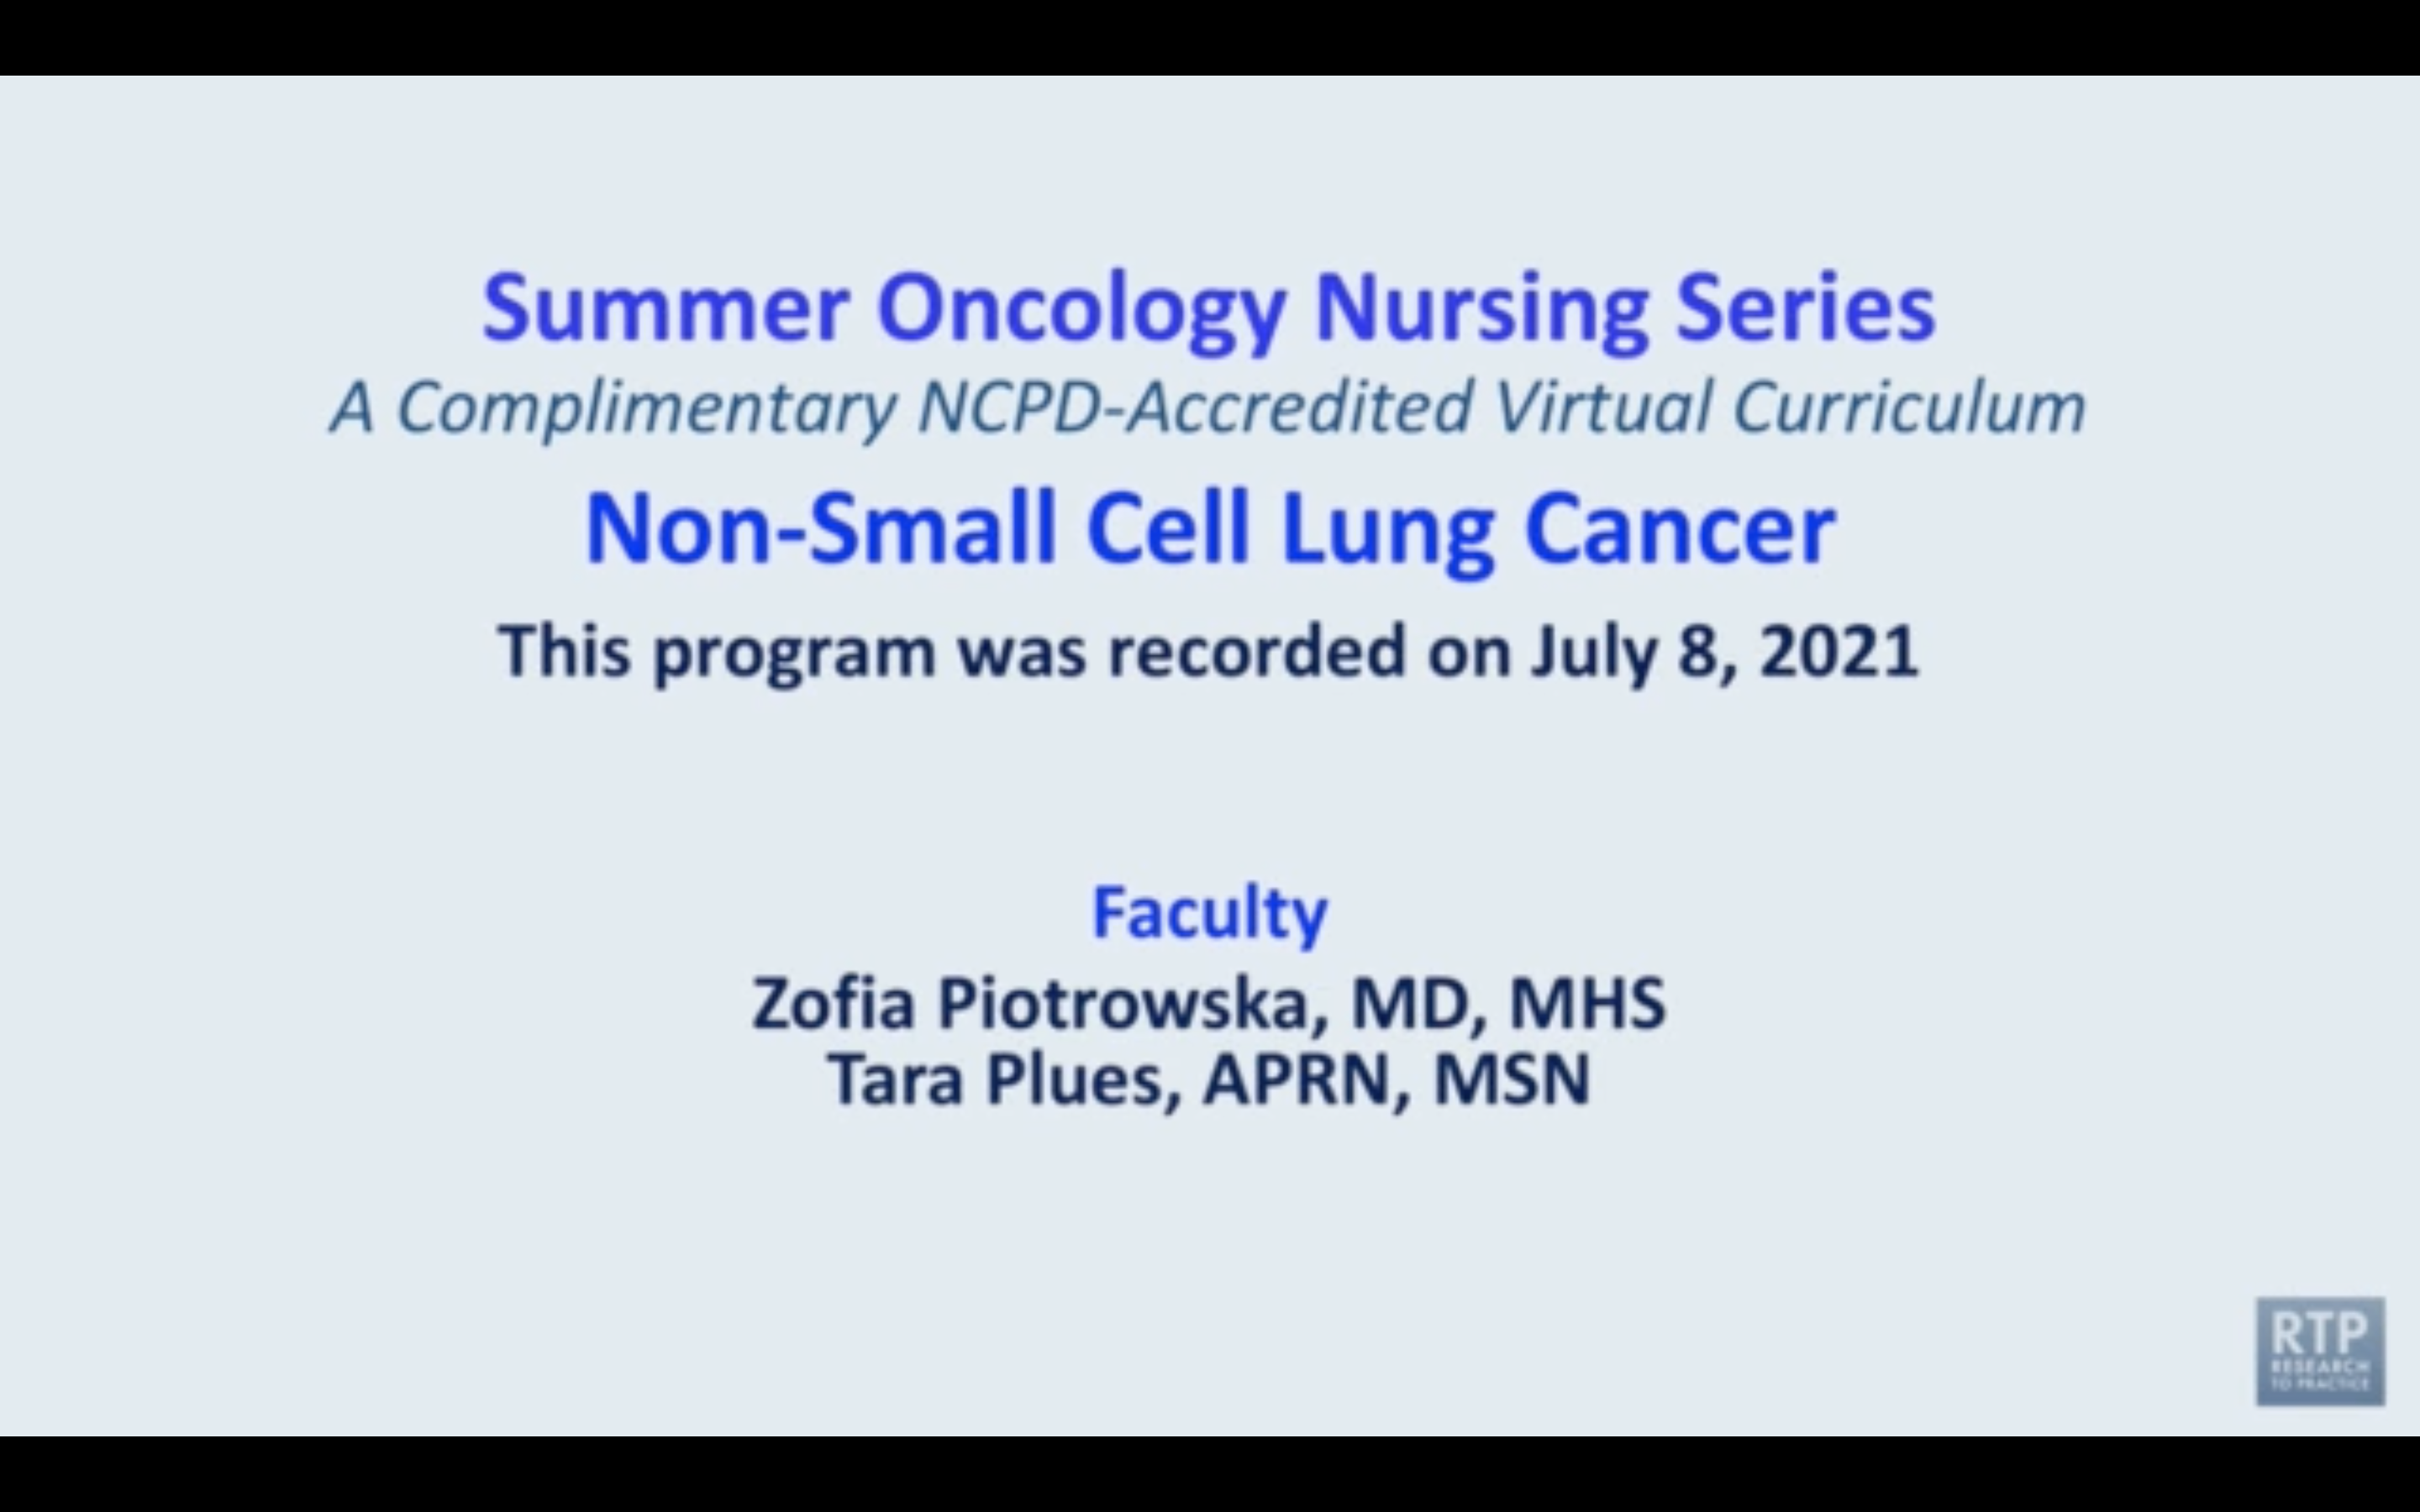 Artwork for Non-Small Cell Lung Cancer | Summer Oncology Nursing Series: Non-Small Cell Lung Cancer